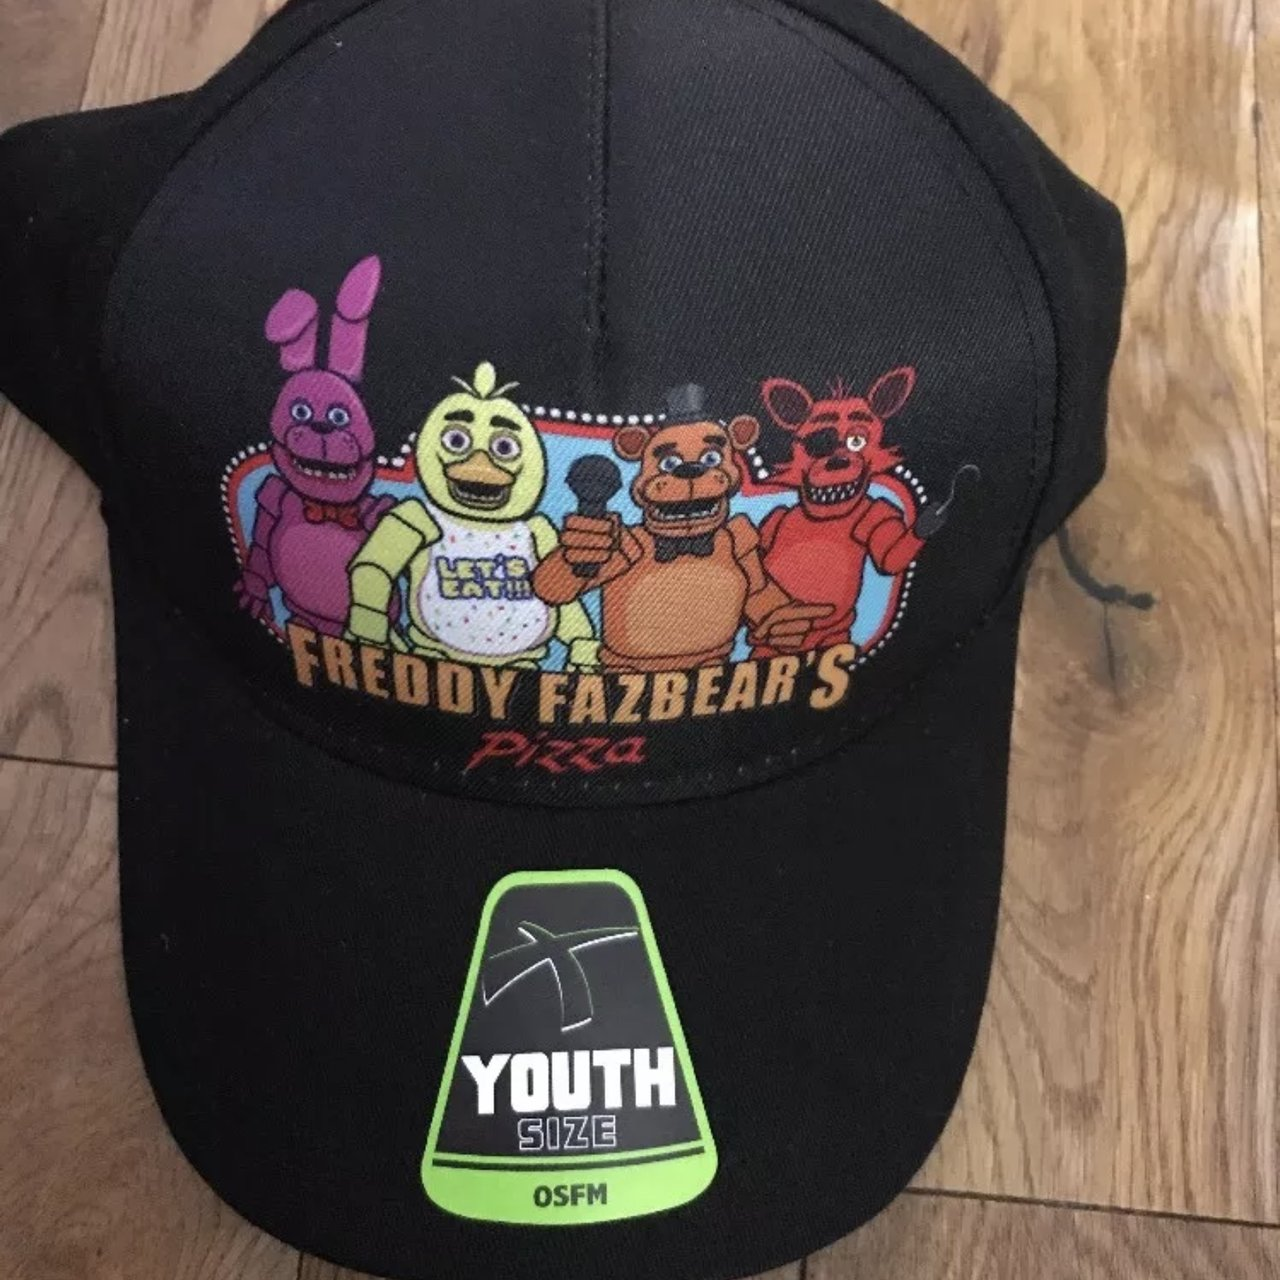 New Boys USA imported five nights at Freddys baseball cap in - Depop b0bbaa39768